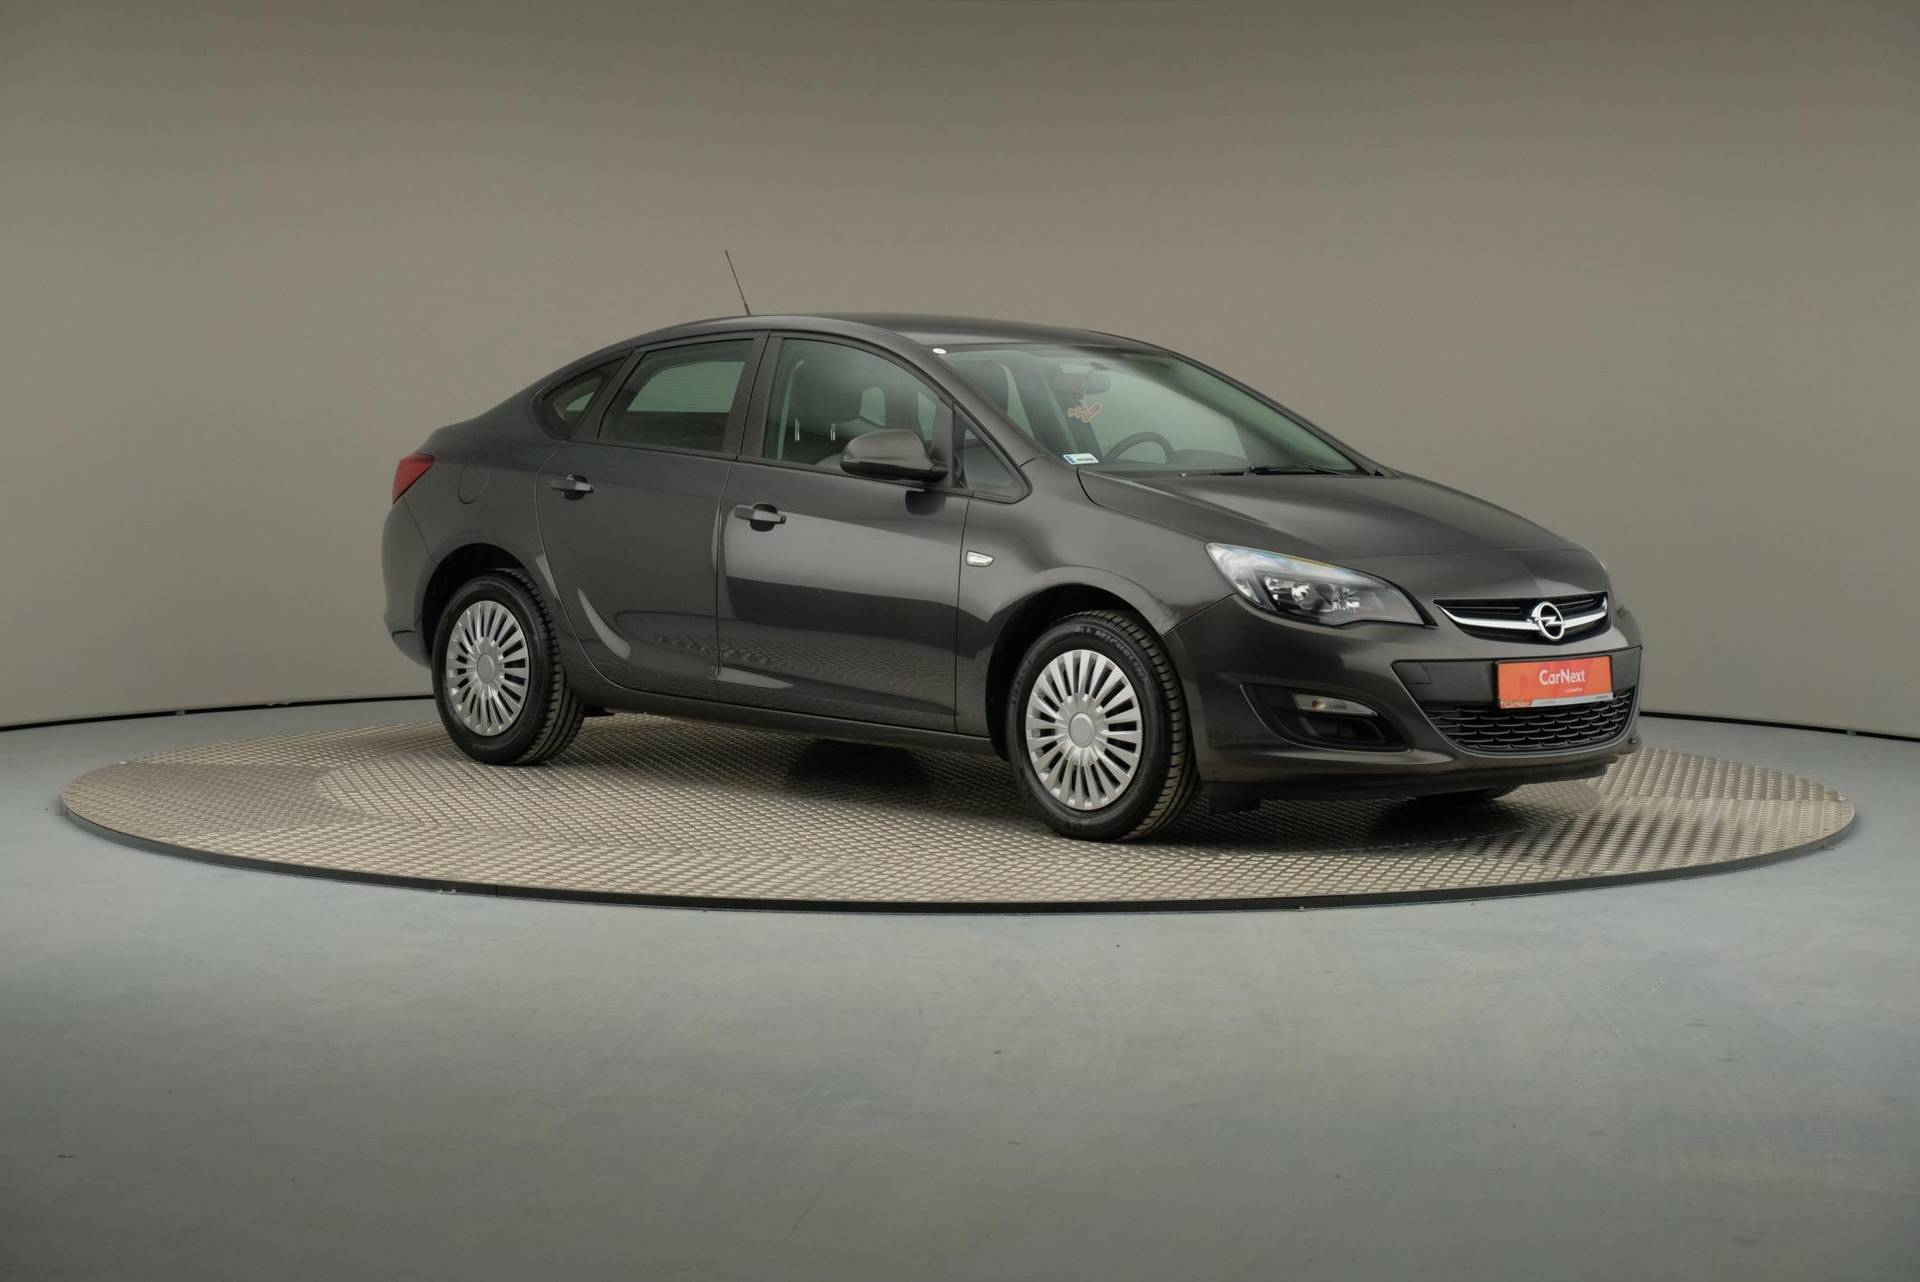 Opel Astra Astra 1.6 Twinport 115km, 360-image27